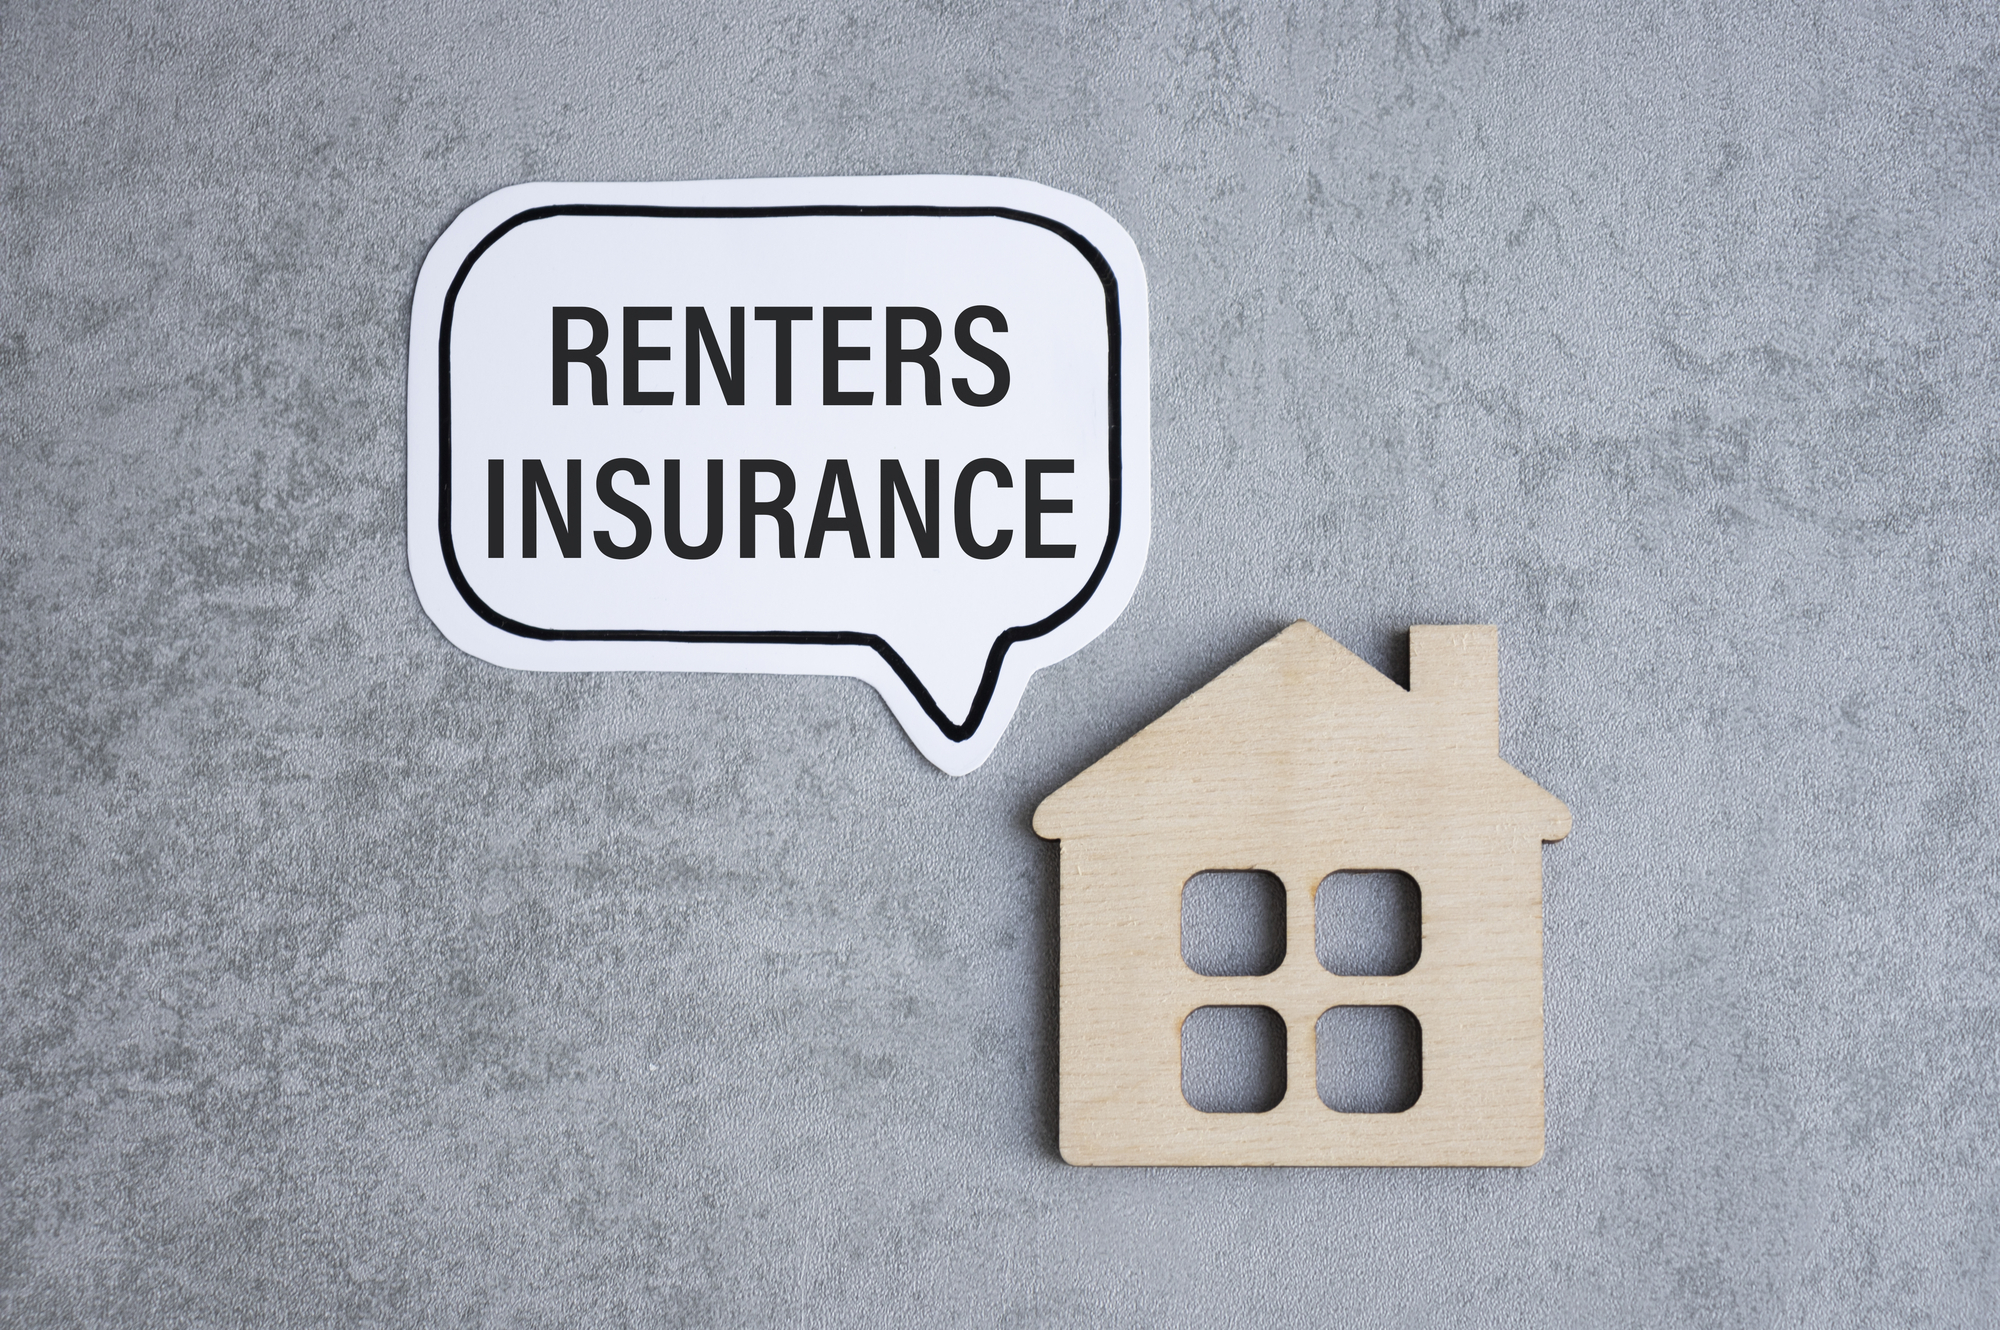 Applying for a Renters Insurance, Renters Insurance application